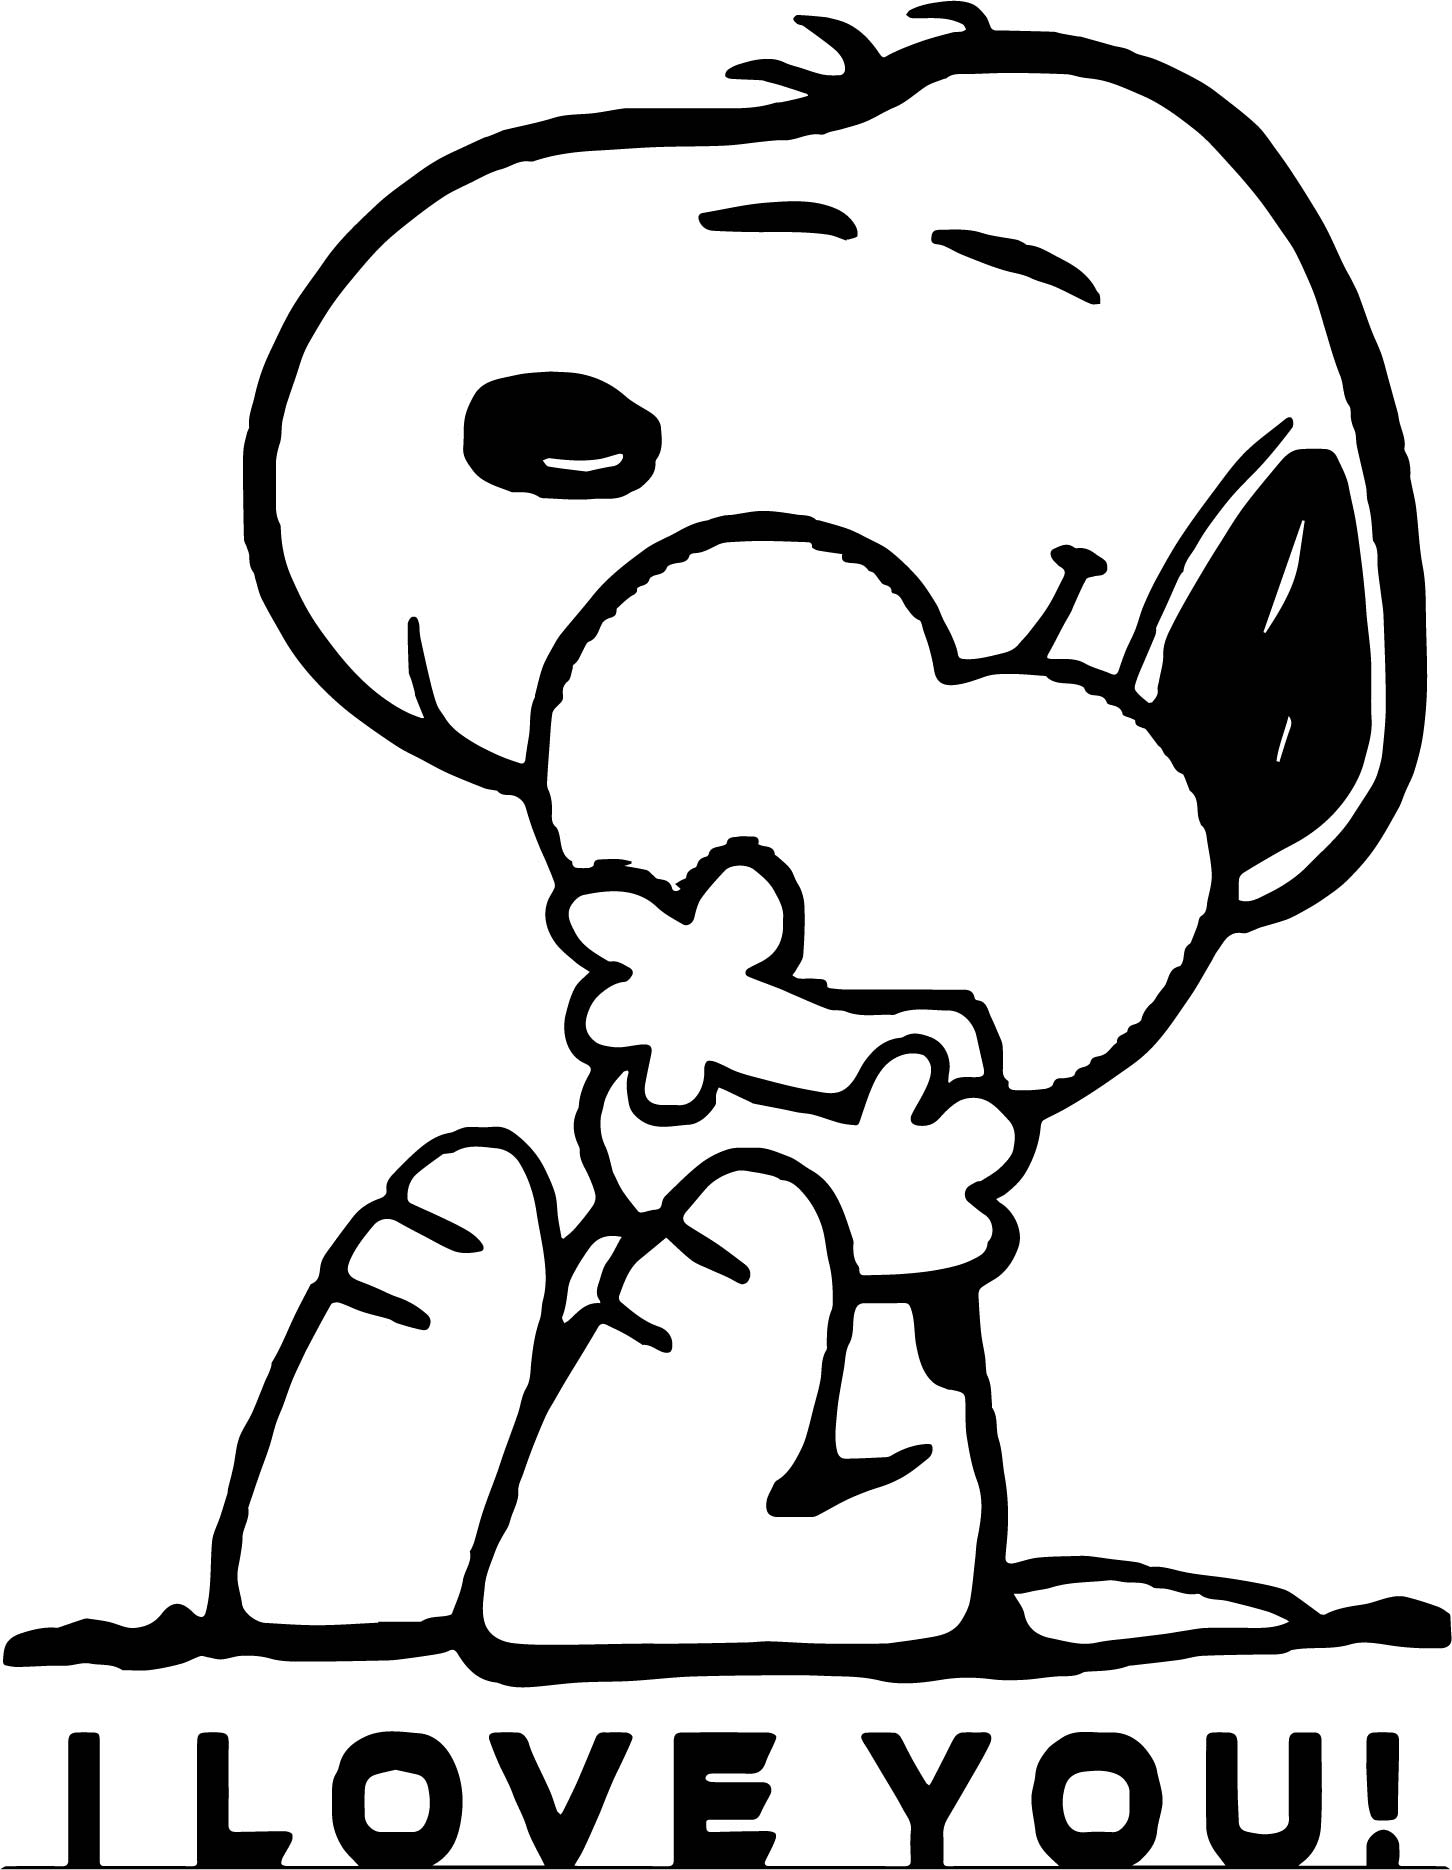 Snoopy i love you coloring page wecoloringpagecom, love you coloring pages